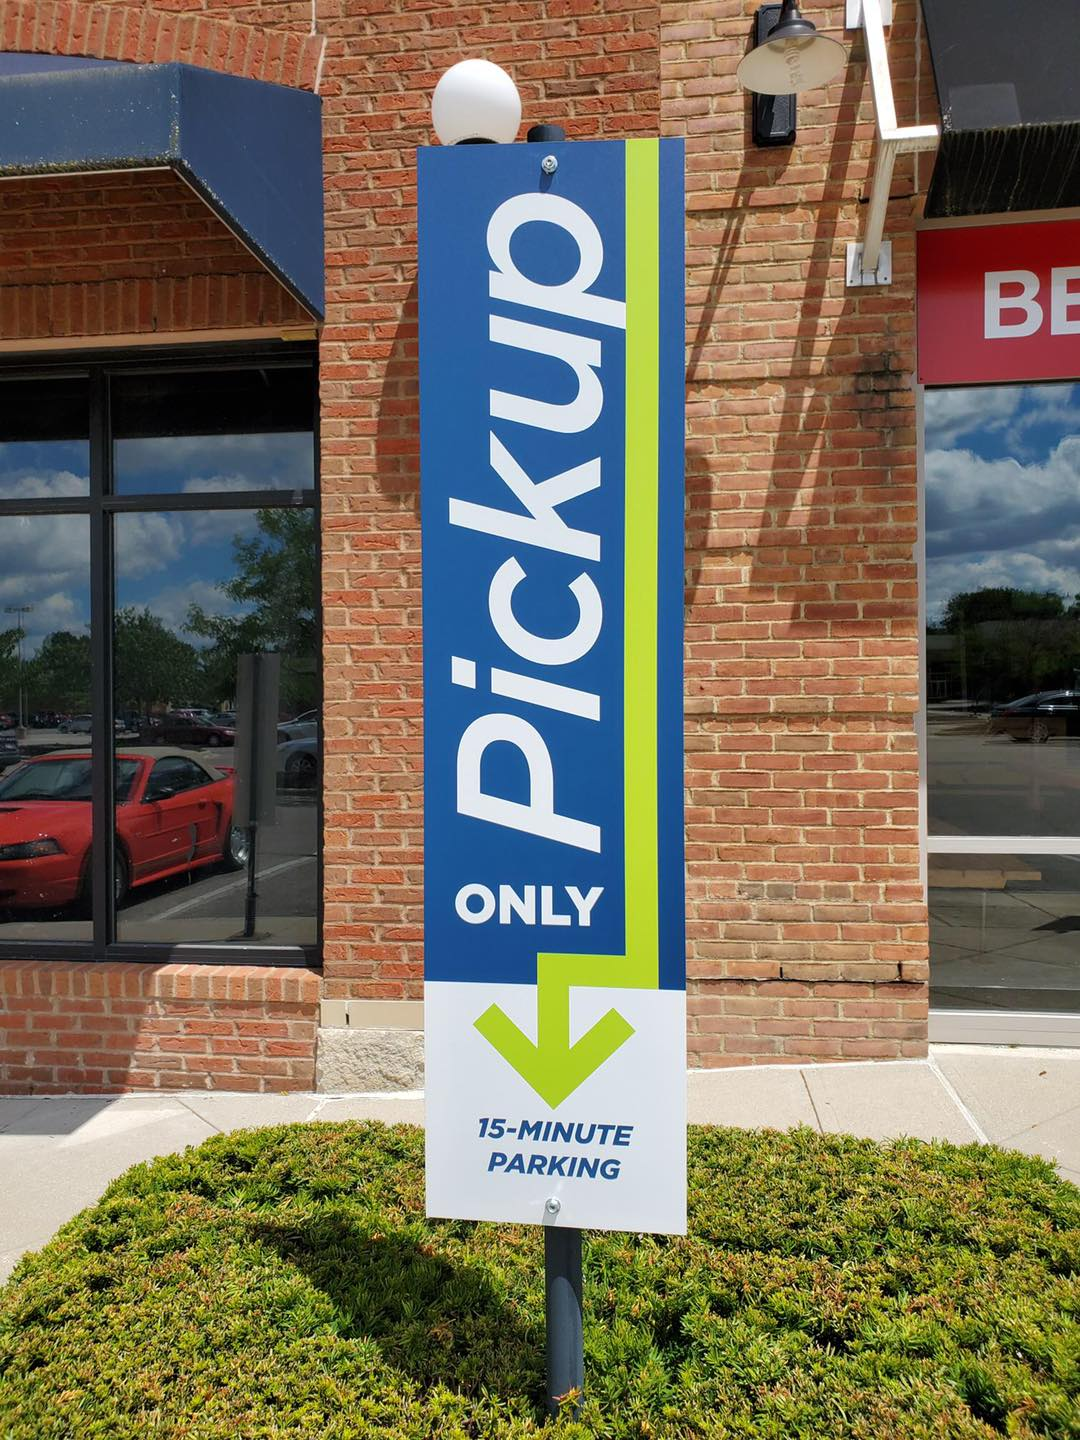 Up close look at the signage CASTO helped create for our tenants drive-up paking signage